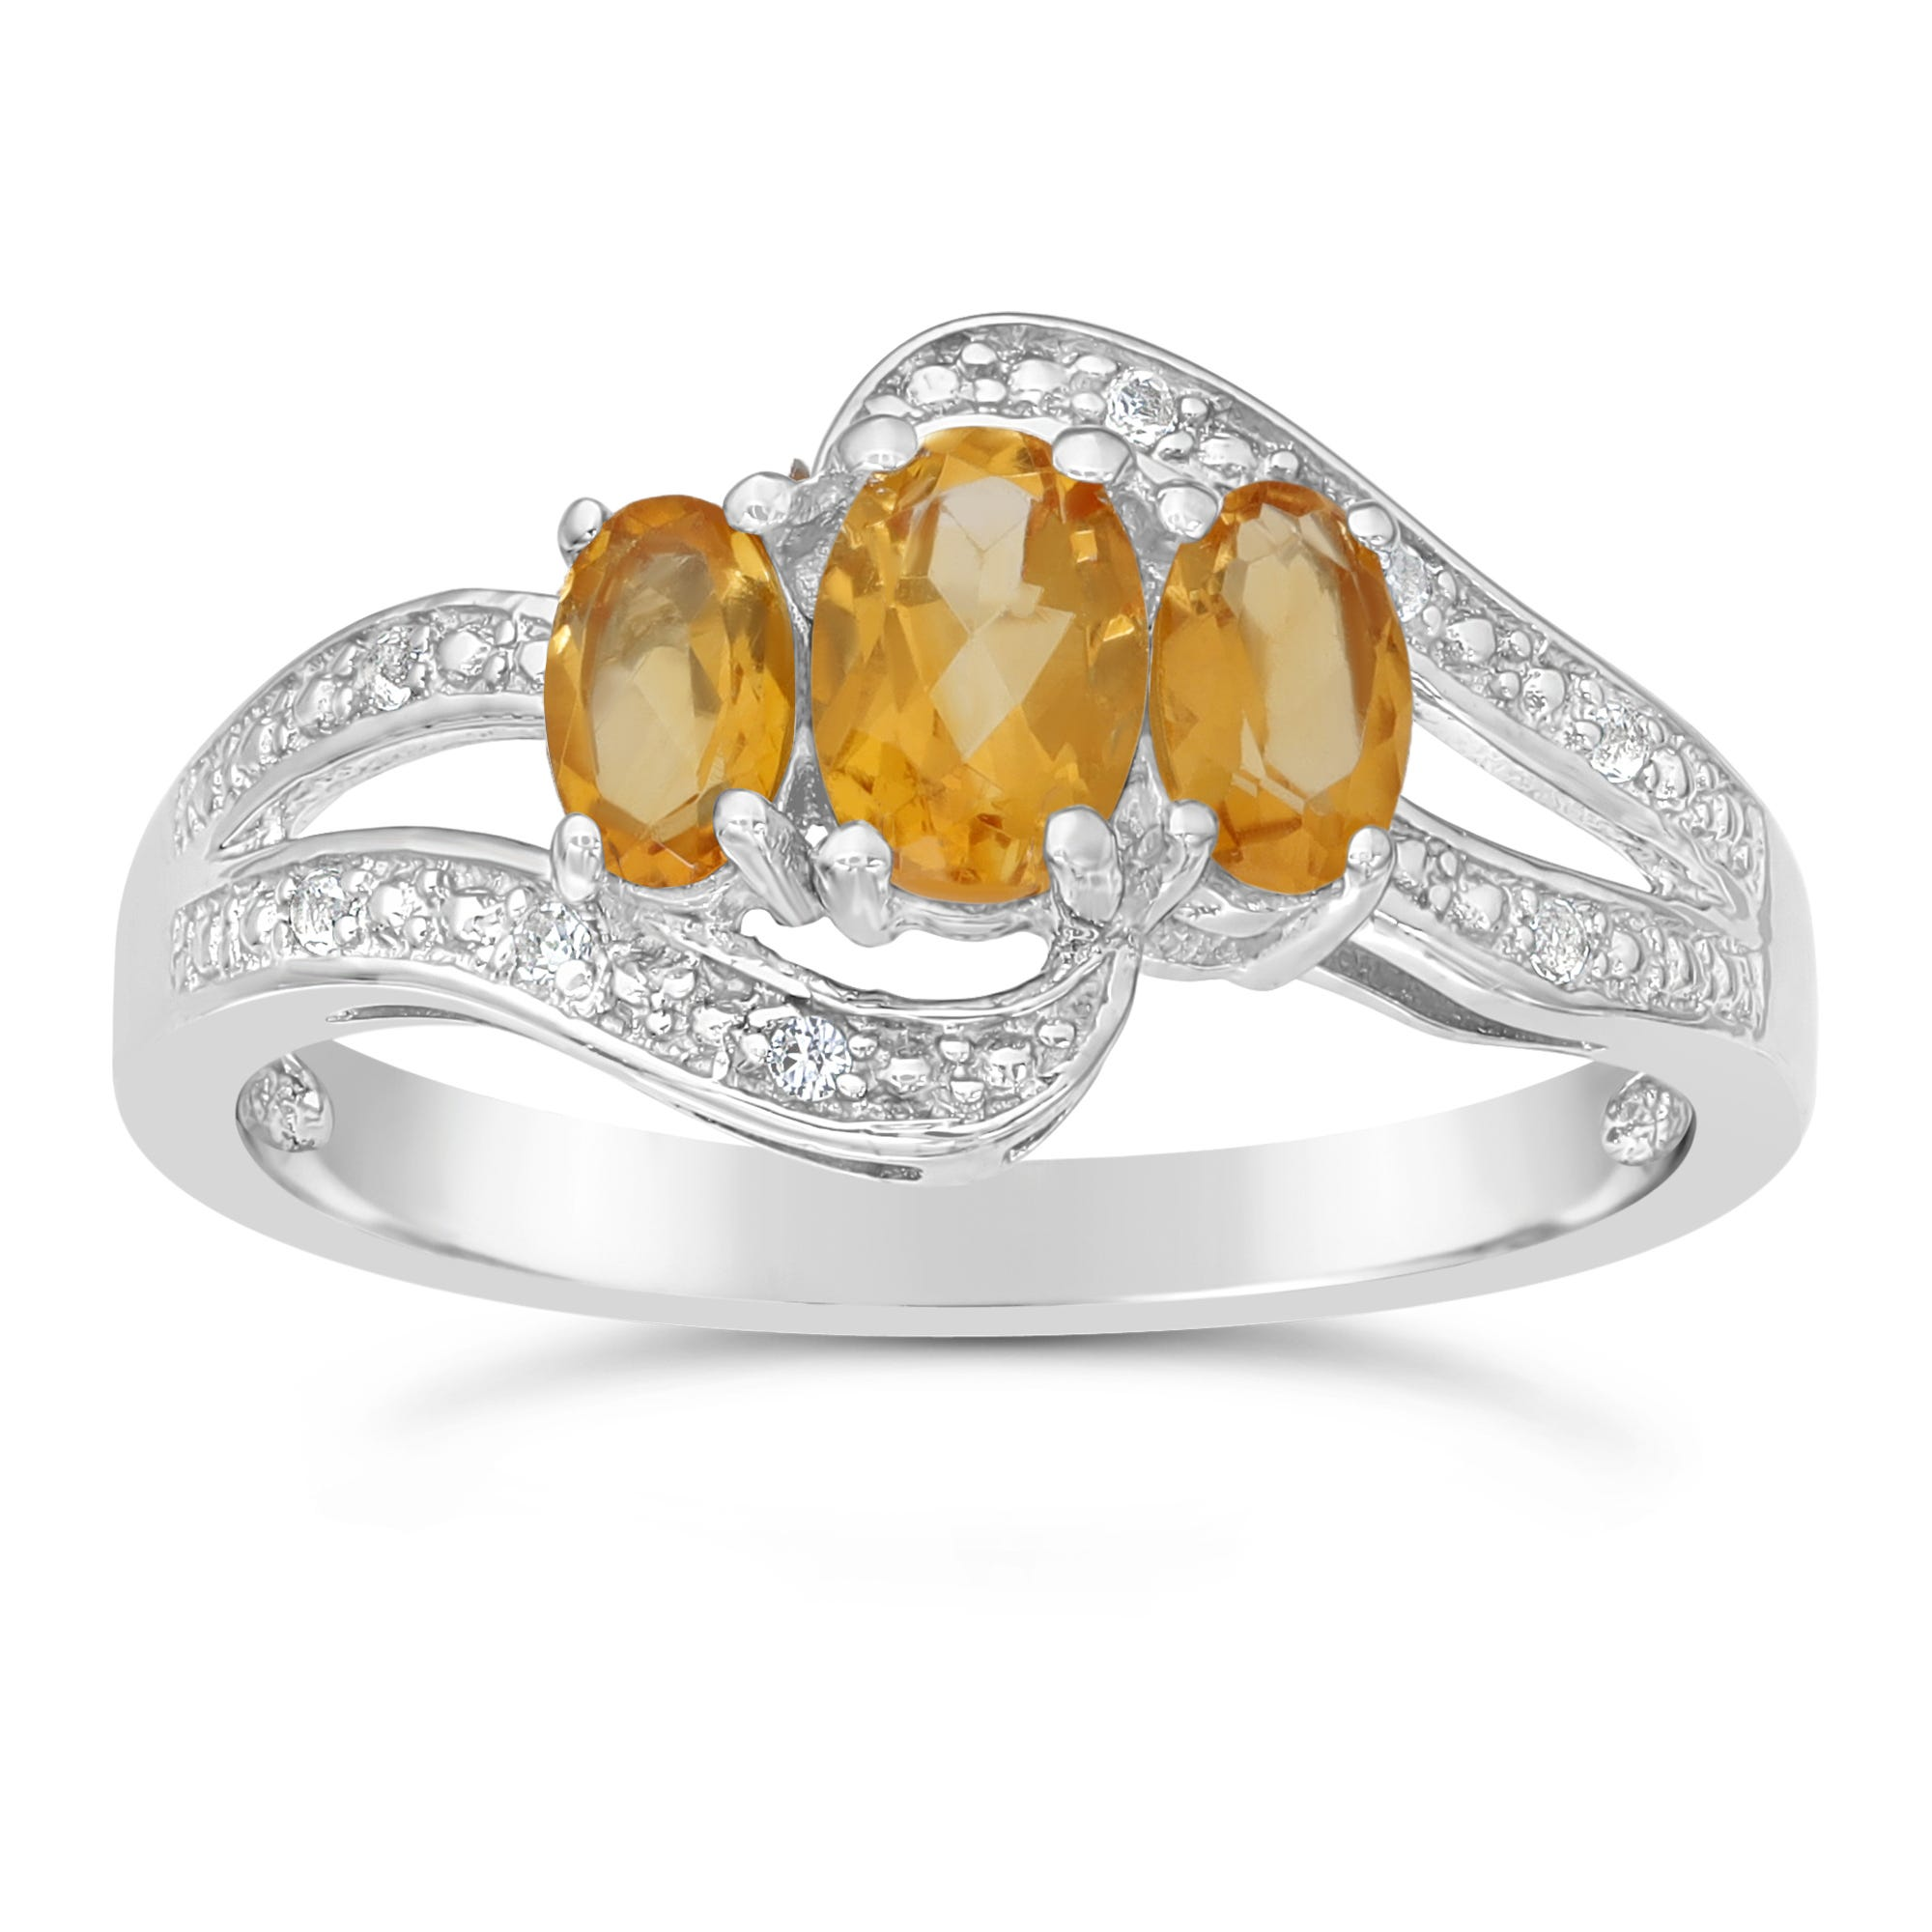 Triple Oval Citrine and White Topaz Ring in Sterling Silver